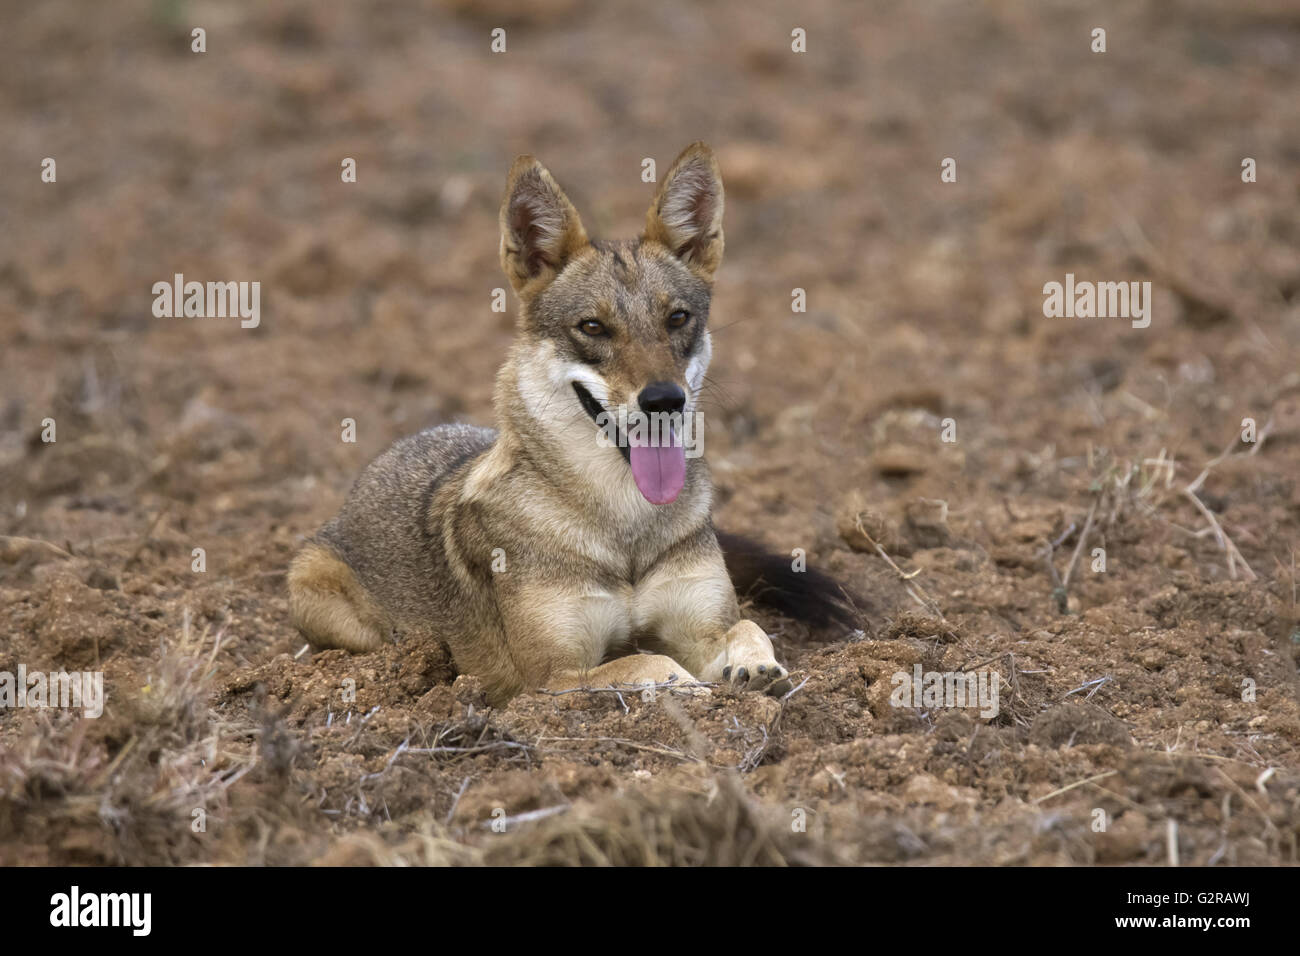 Jackal, Hampi, Karnataka, India - Stock Image